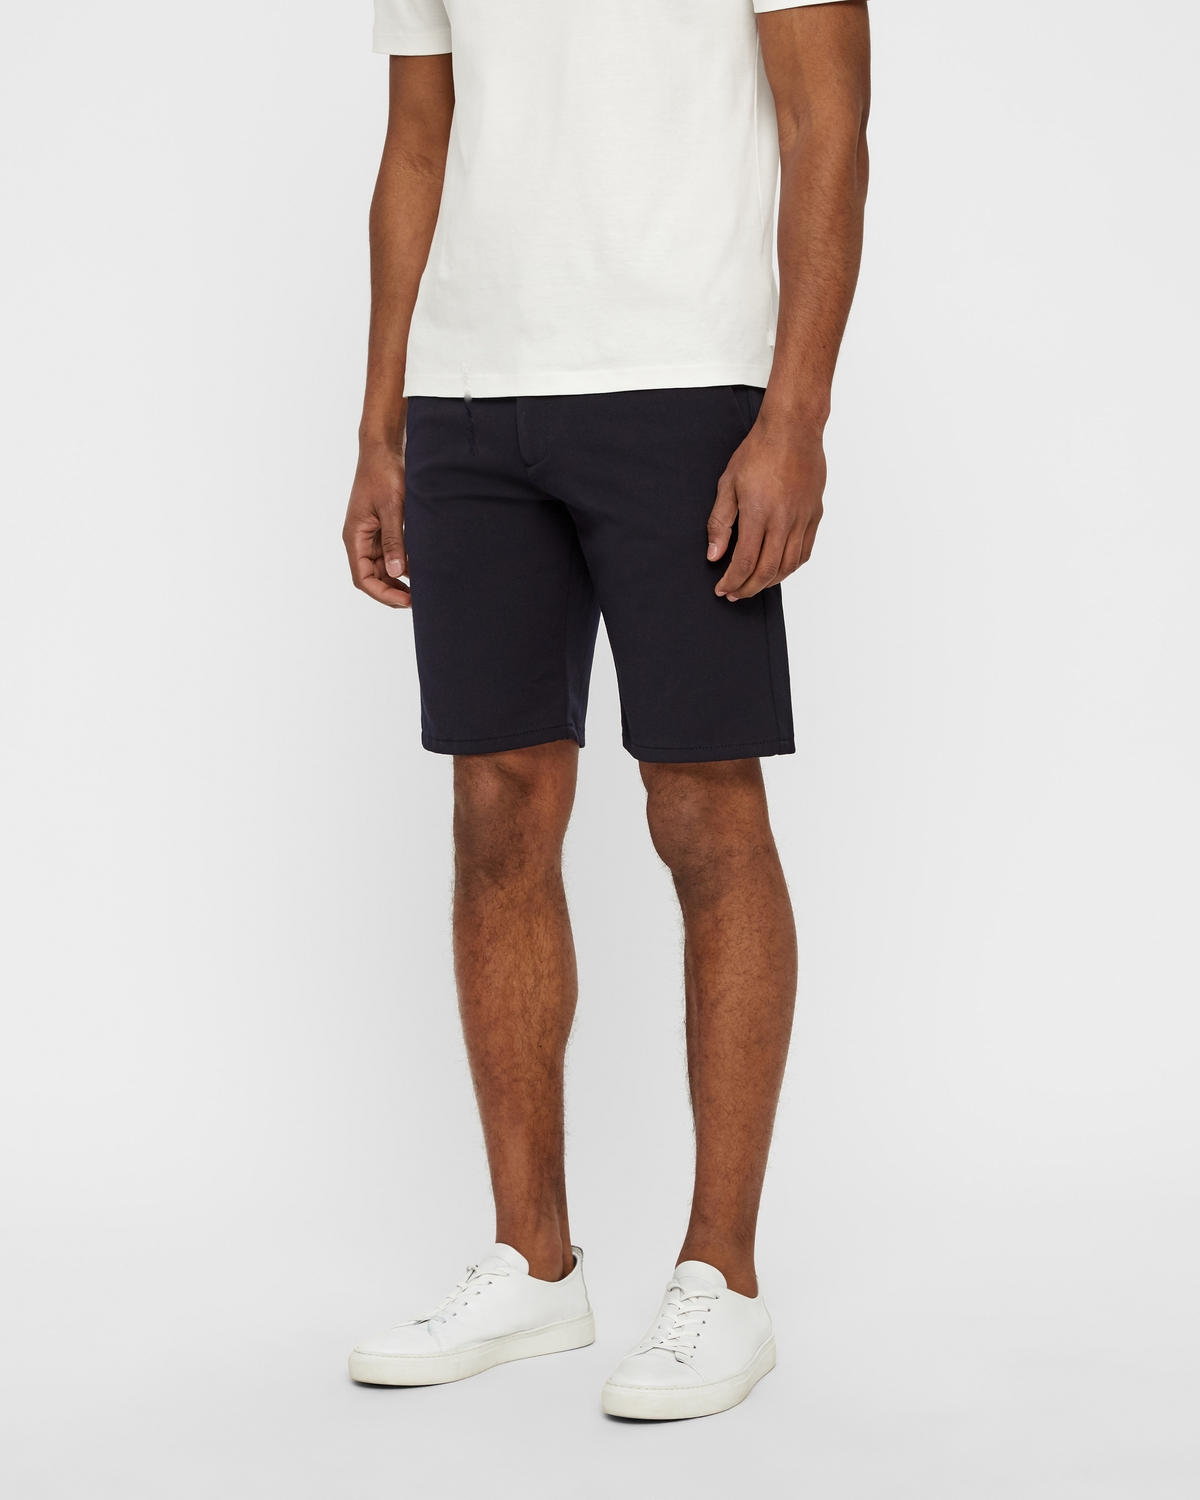 Tailored & Originals Frederic shorts